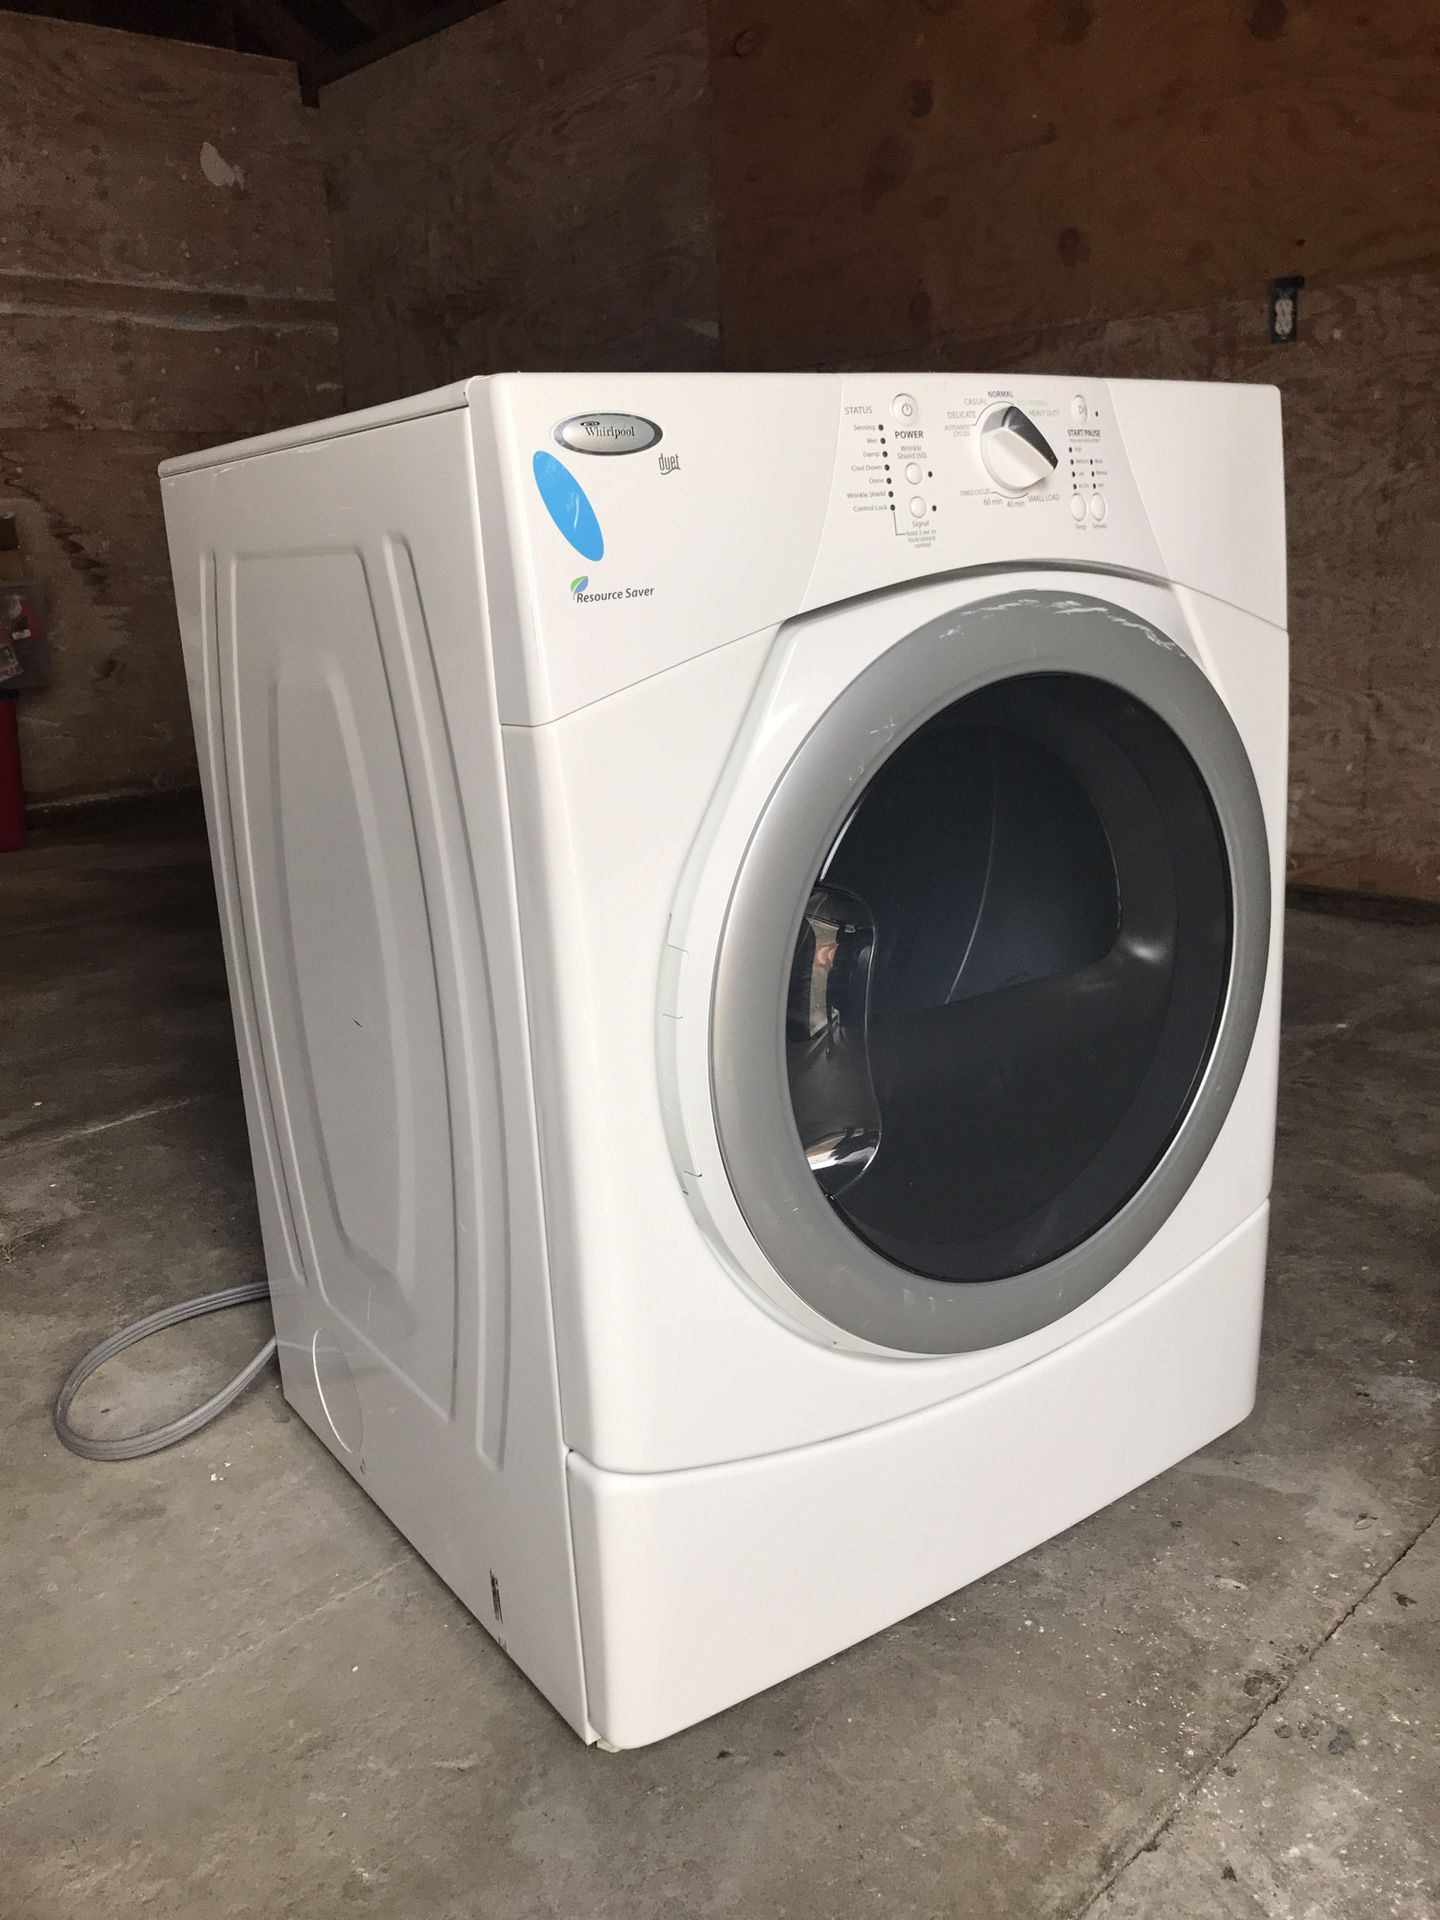 Whirlpool dryer electric $150 everything works, lint needs to be cleaned out